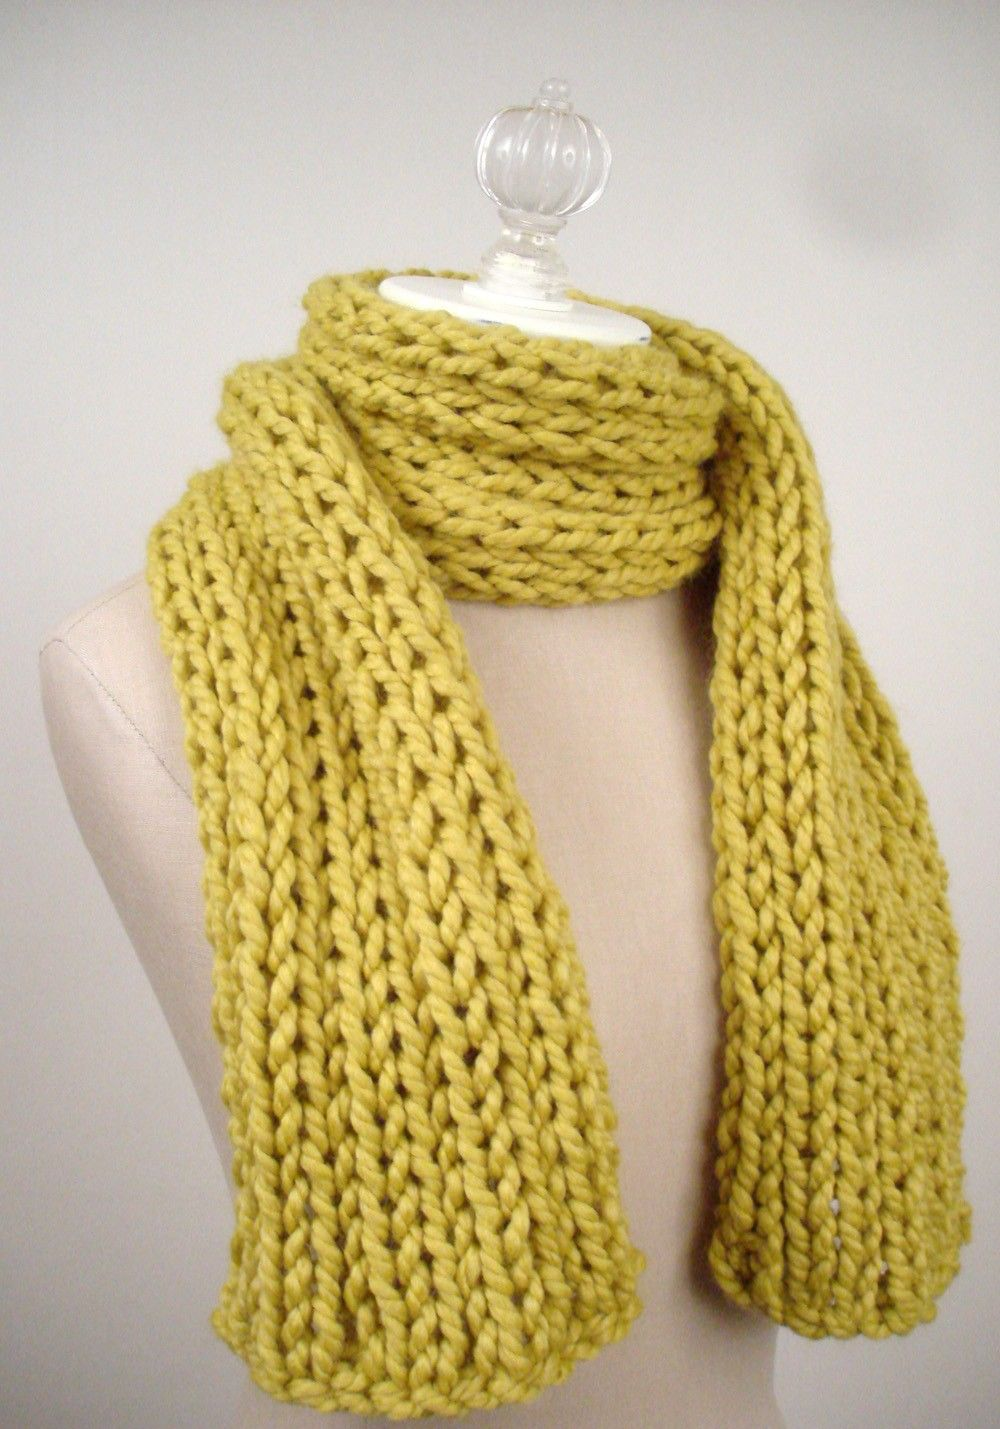 Knit Scarf Pattern With Bulky Yarn : Free knitting pattern ~Phydeaux Designs One skein super bulky yarn (106 yards...